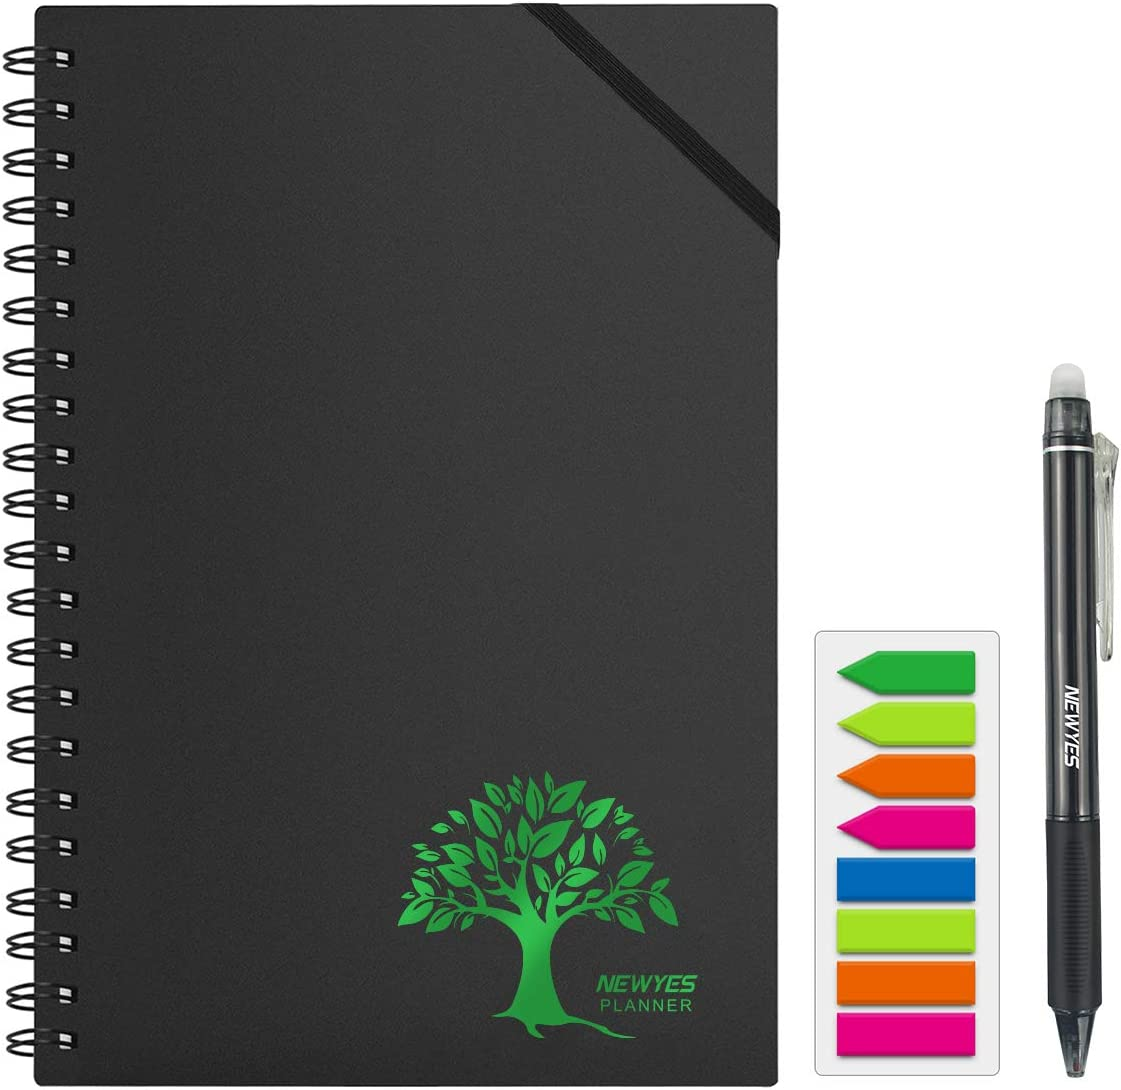 NEWYES Reusable Planner, Undated Yearly/Weekly/Monthly Calendar, Smart Personal Organizer with Cloud Storage for Office Workers/Students/Teachers [Erasable Pen and Colorful Tabs Included]